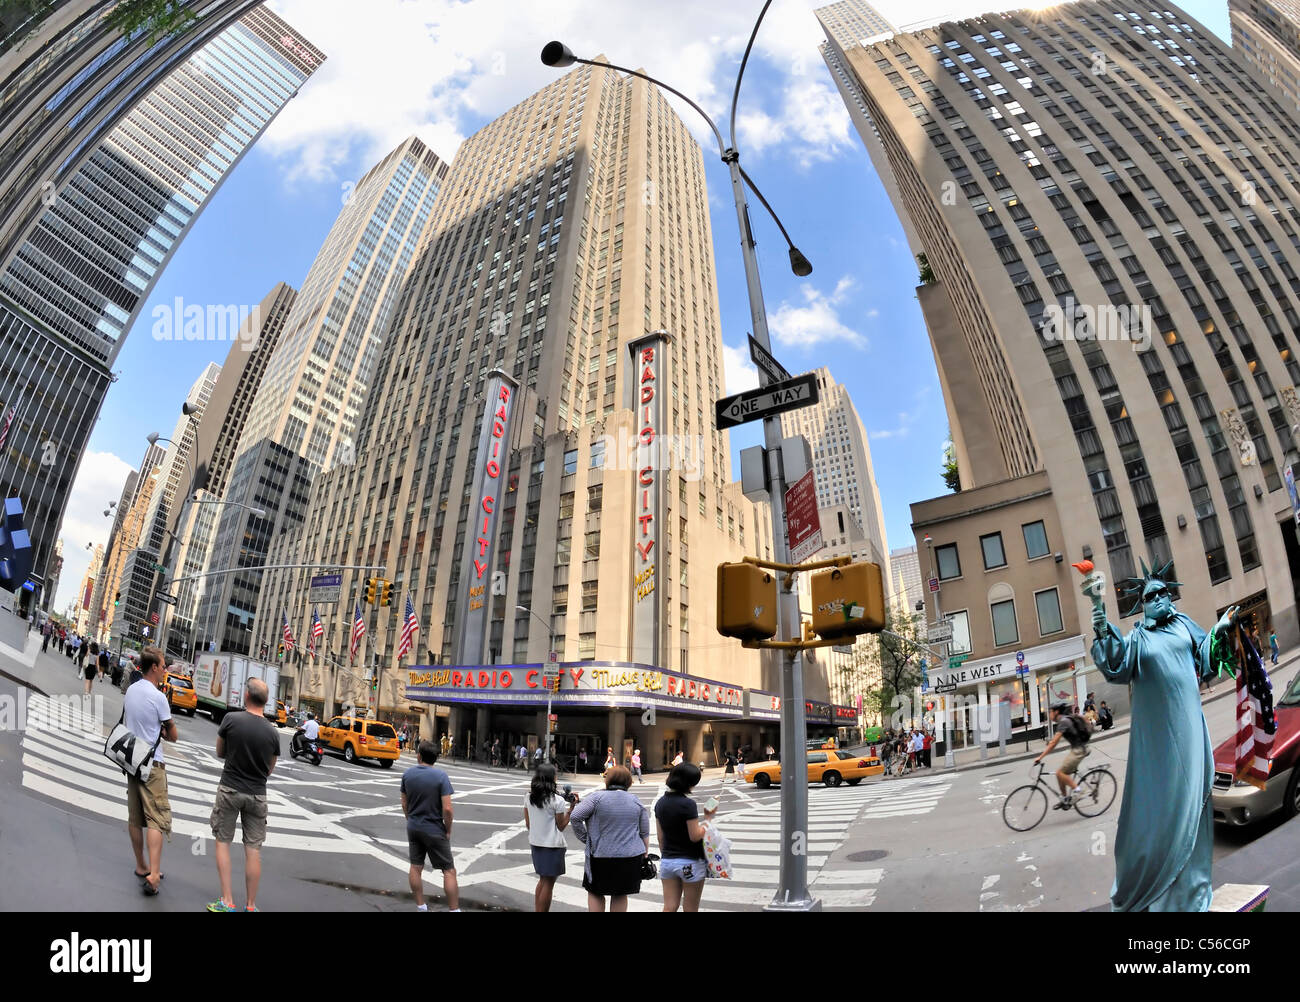 Radio City Music Hall across street, and person in Statue of Liberty costume, NYC, USA, 2011 (180 degree fisheye - Stock Image